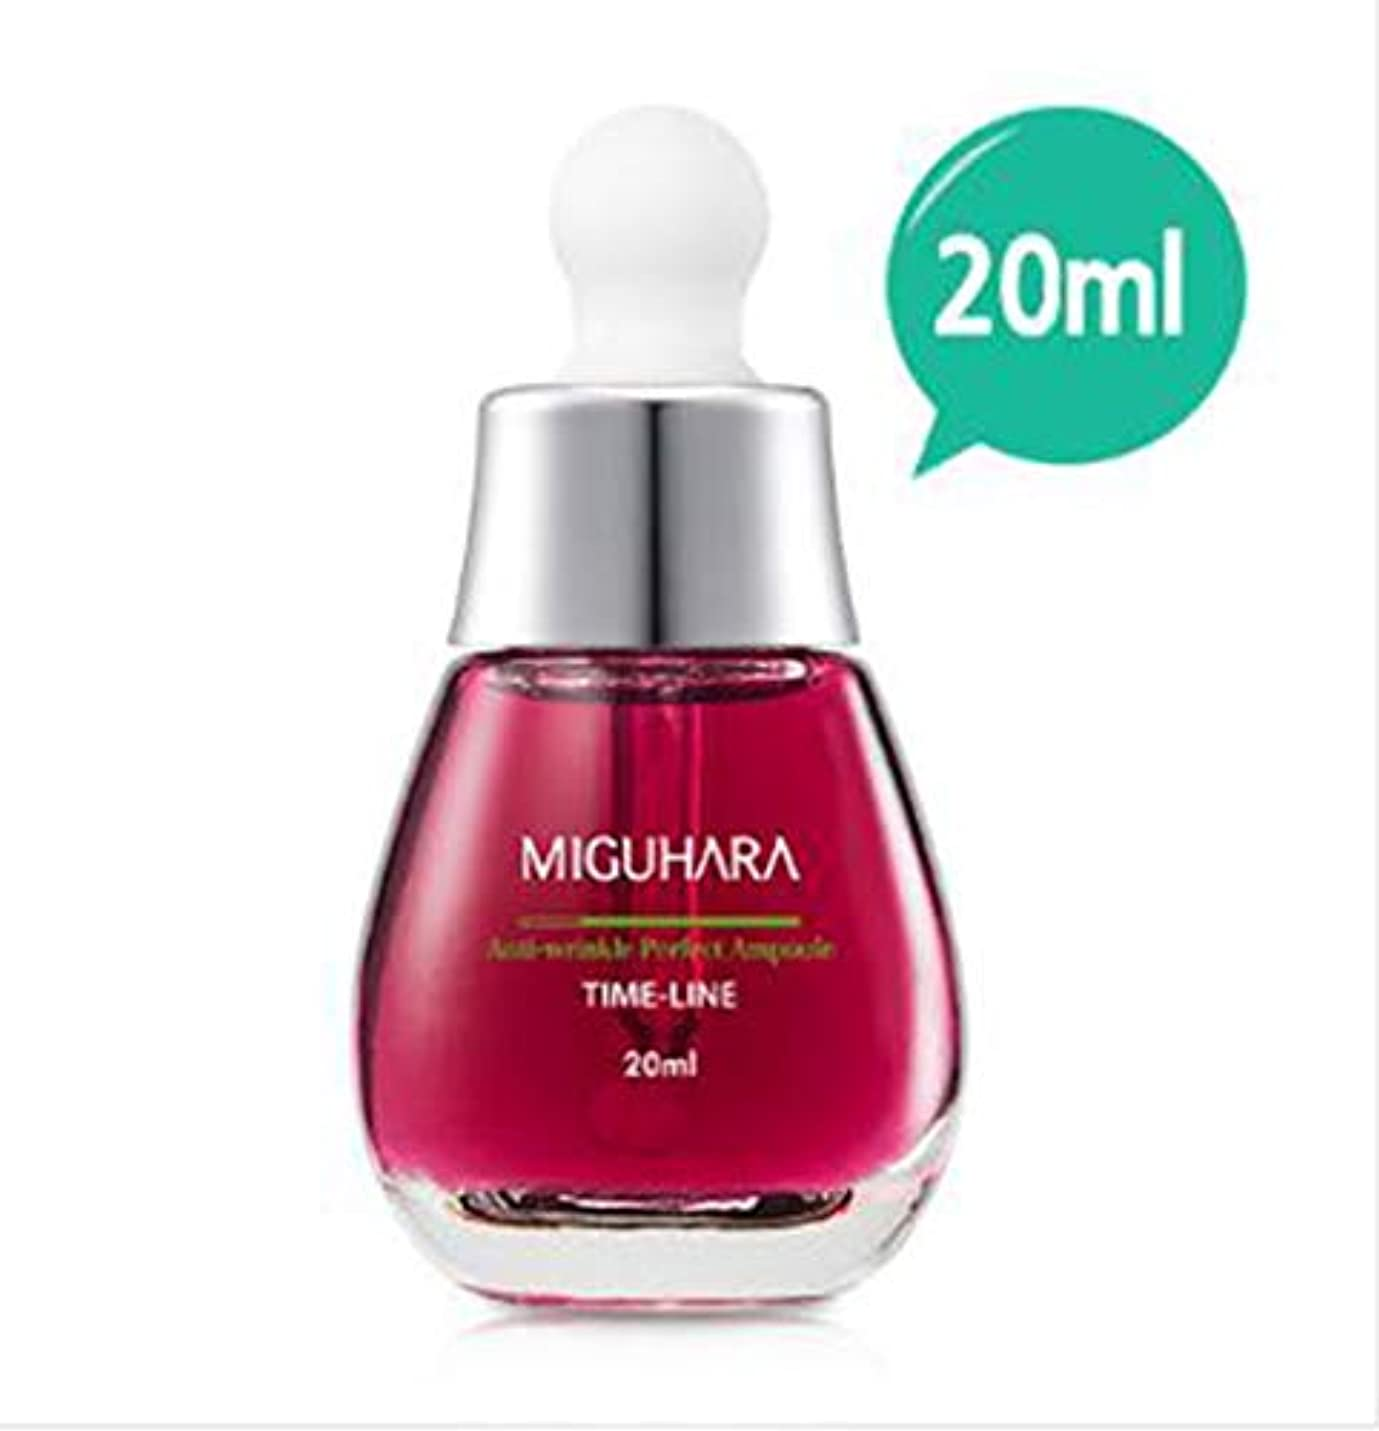 MIGUHARA Anti-wrinkle Perfect Ampoule 20ml/アンチ-リンクルパーフェクトアンプル 20ml